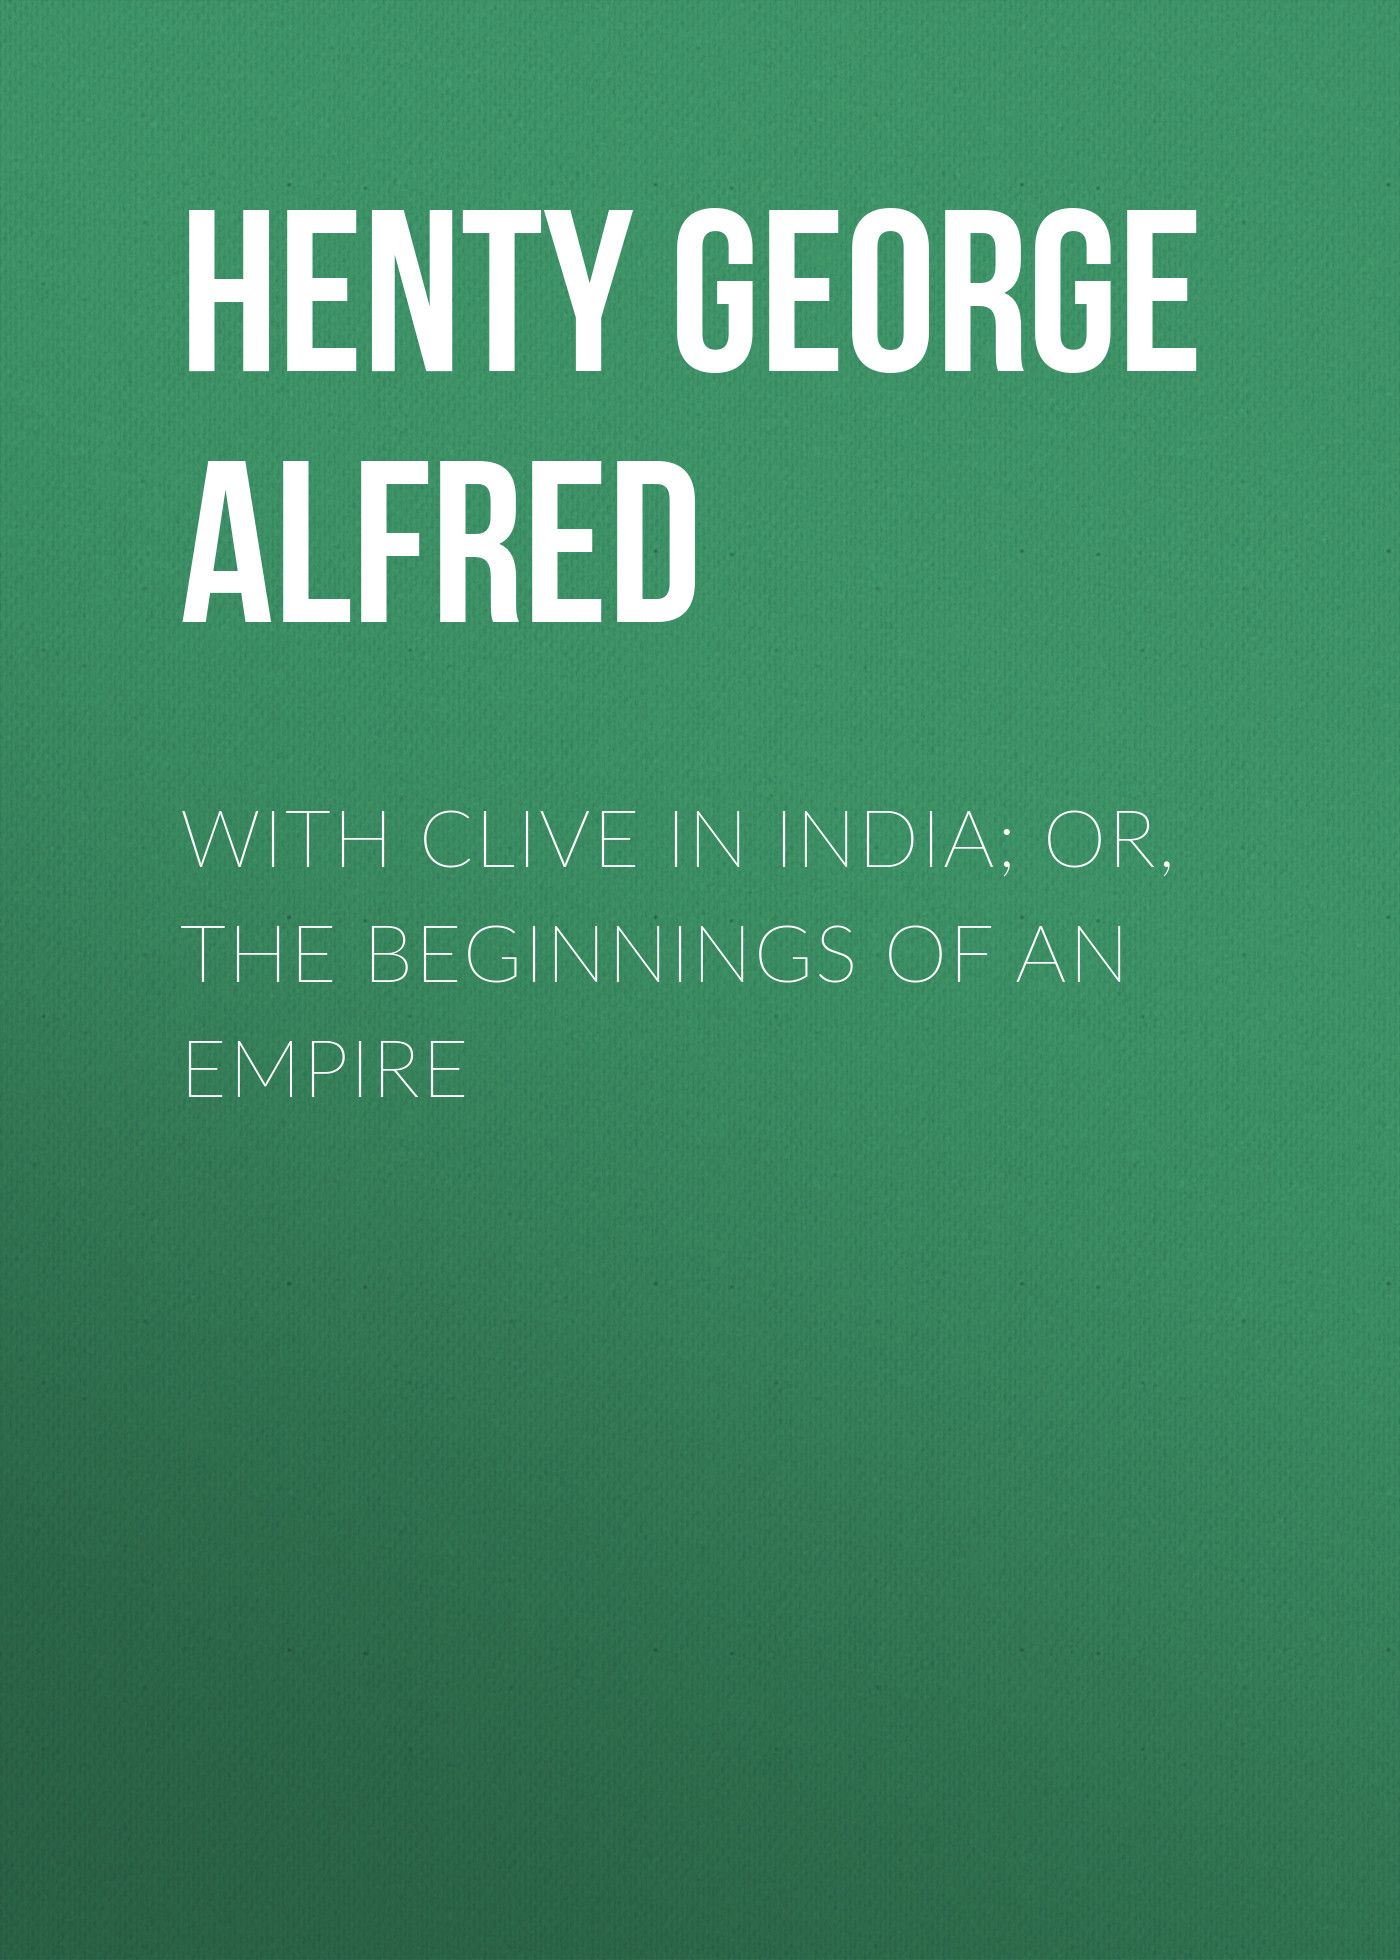 Henty George Alfred With Clive in India; Or, The Beginnings of an Empire цена